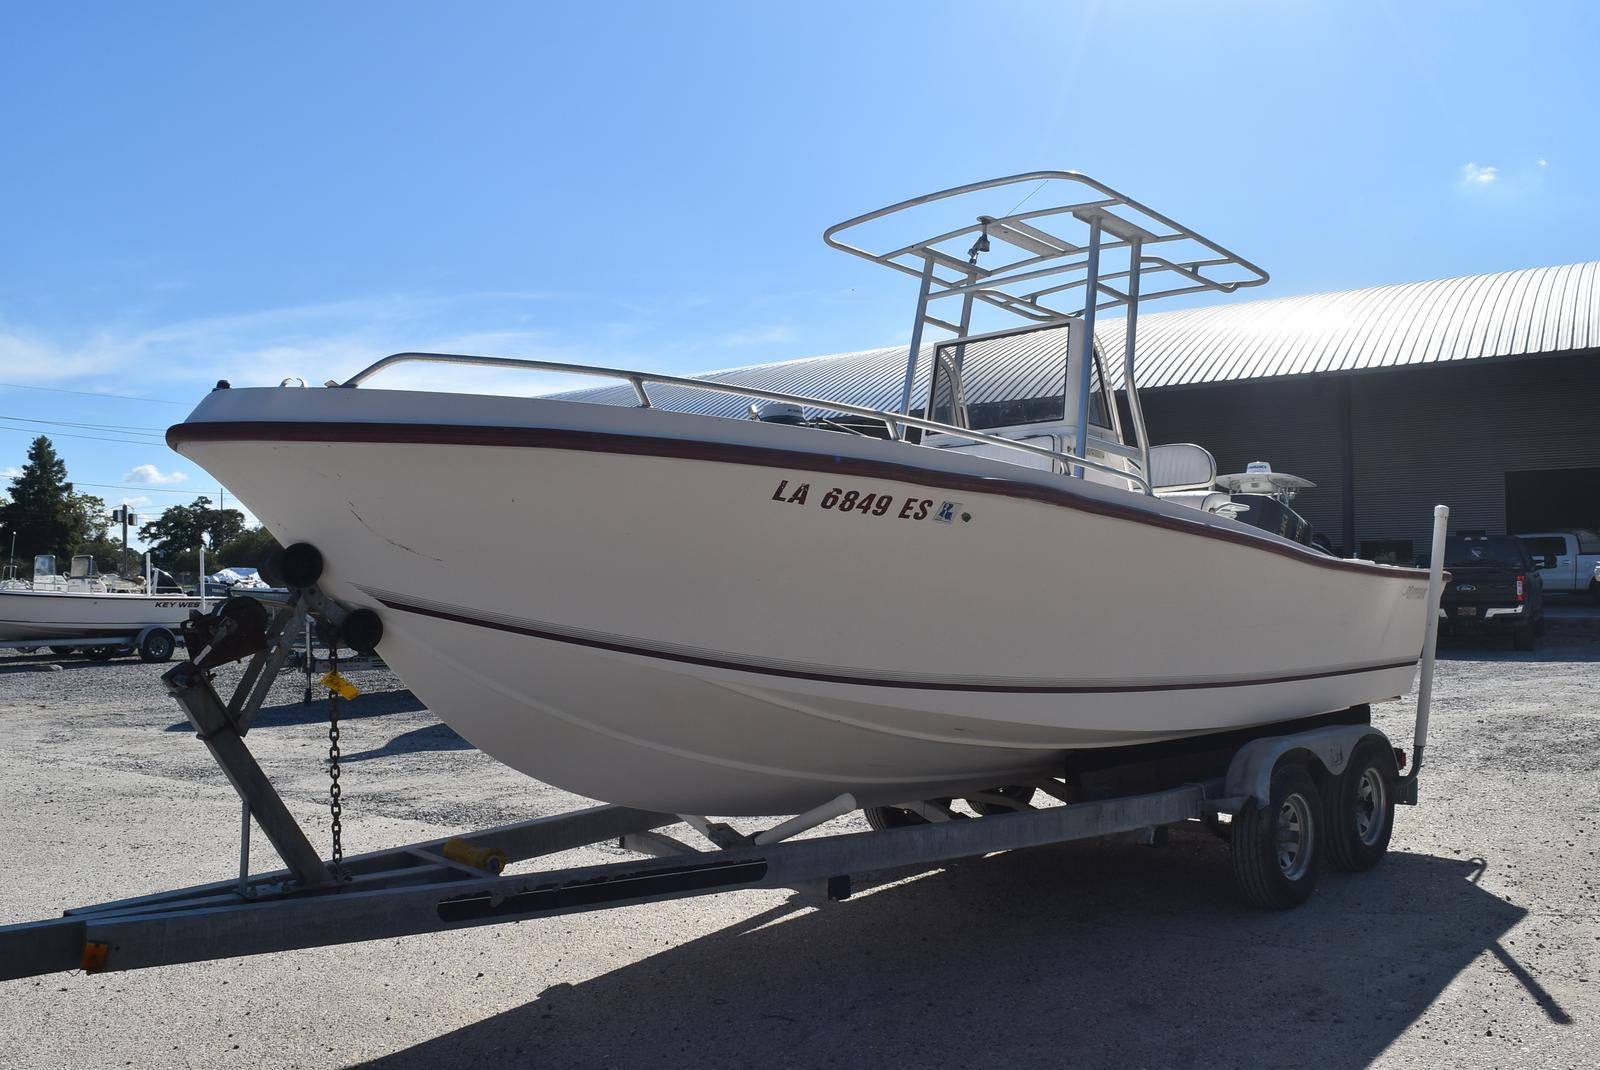 1996 Mako boat for sale, model of the boat is 22 Mako & Image # 301 of 390